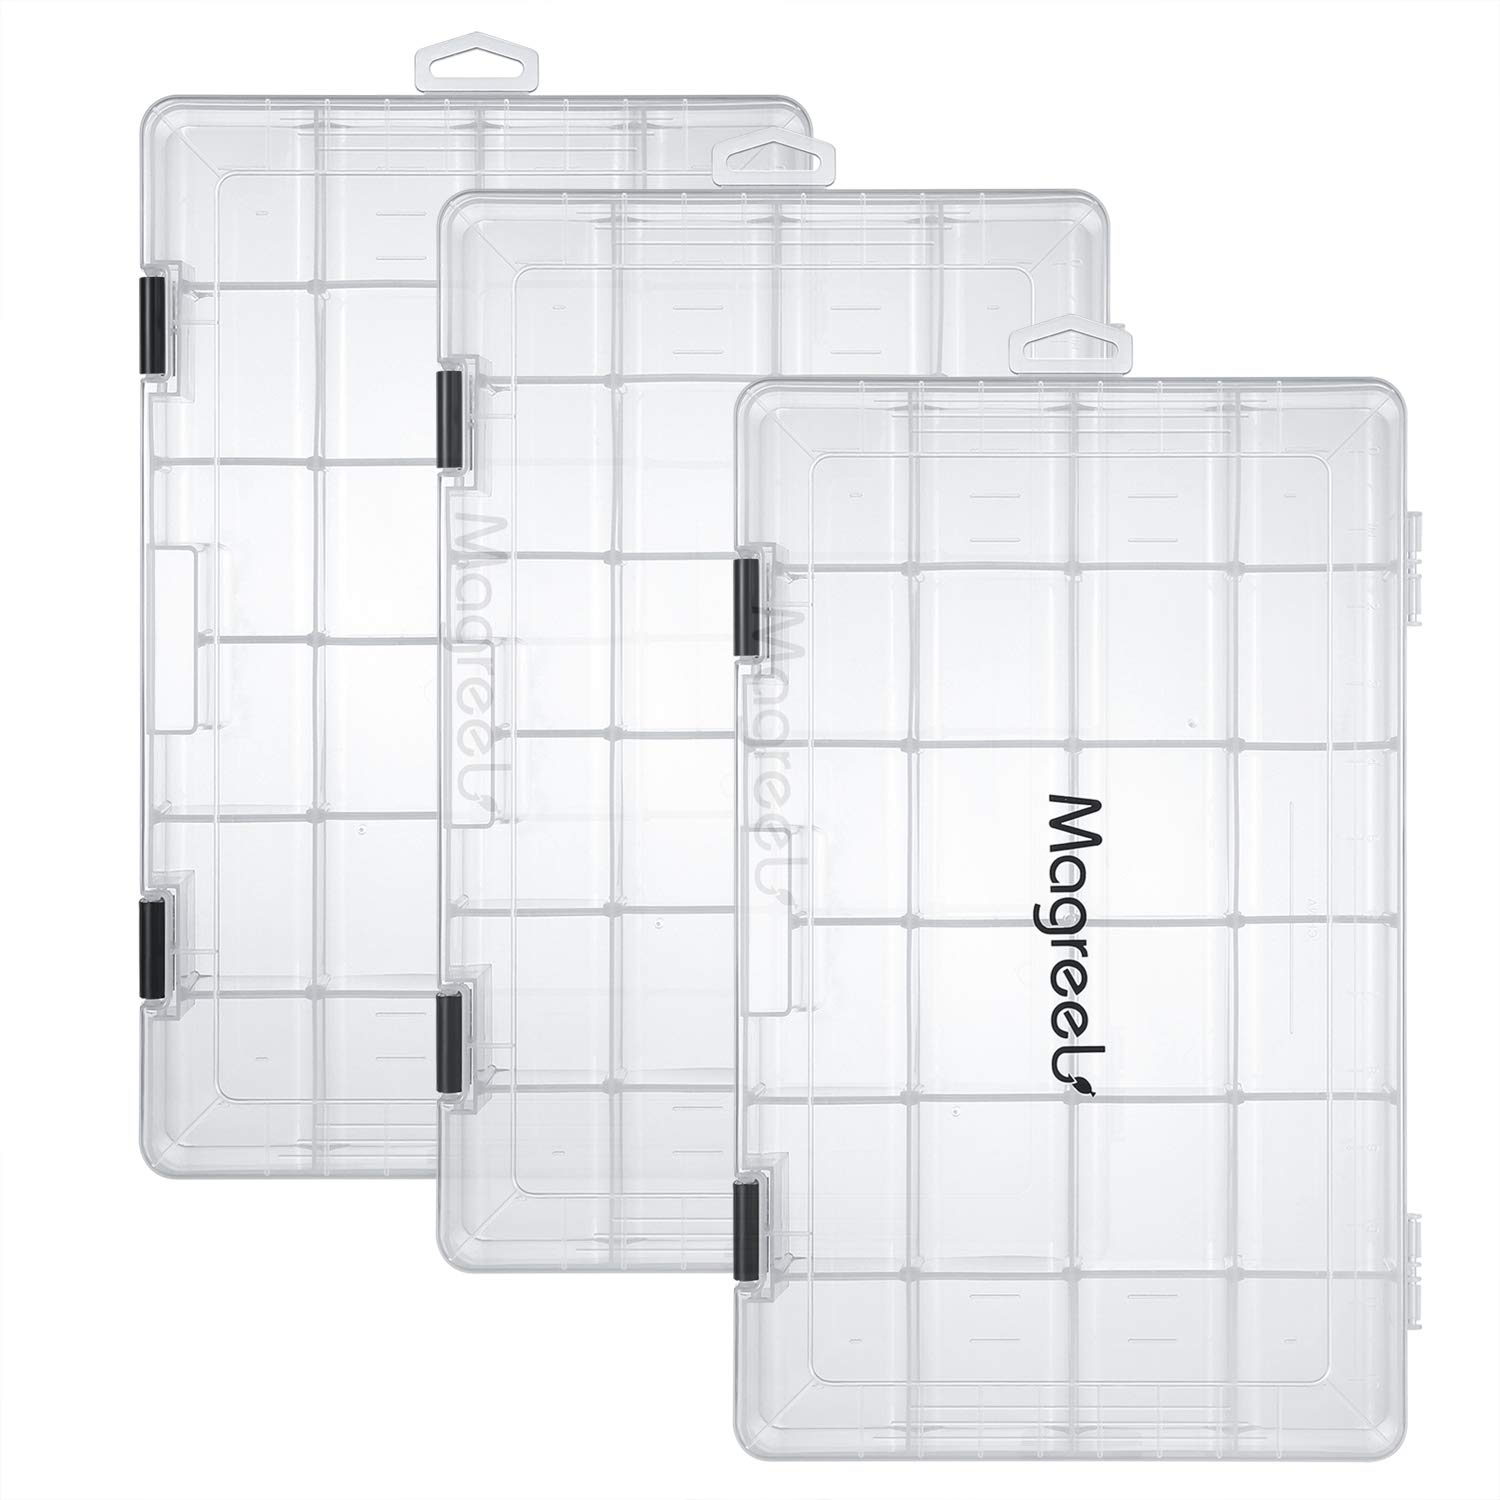 Magreel Fishing Tackle Boxes, 3-Pack Transparent Fish Tackle Storage with Adjustable Dividers, Waterproof Plastic Box Organizer 3600/3700 Tackle Trays by Magreel